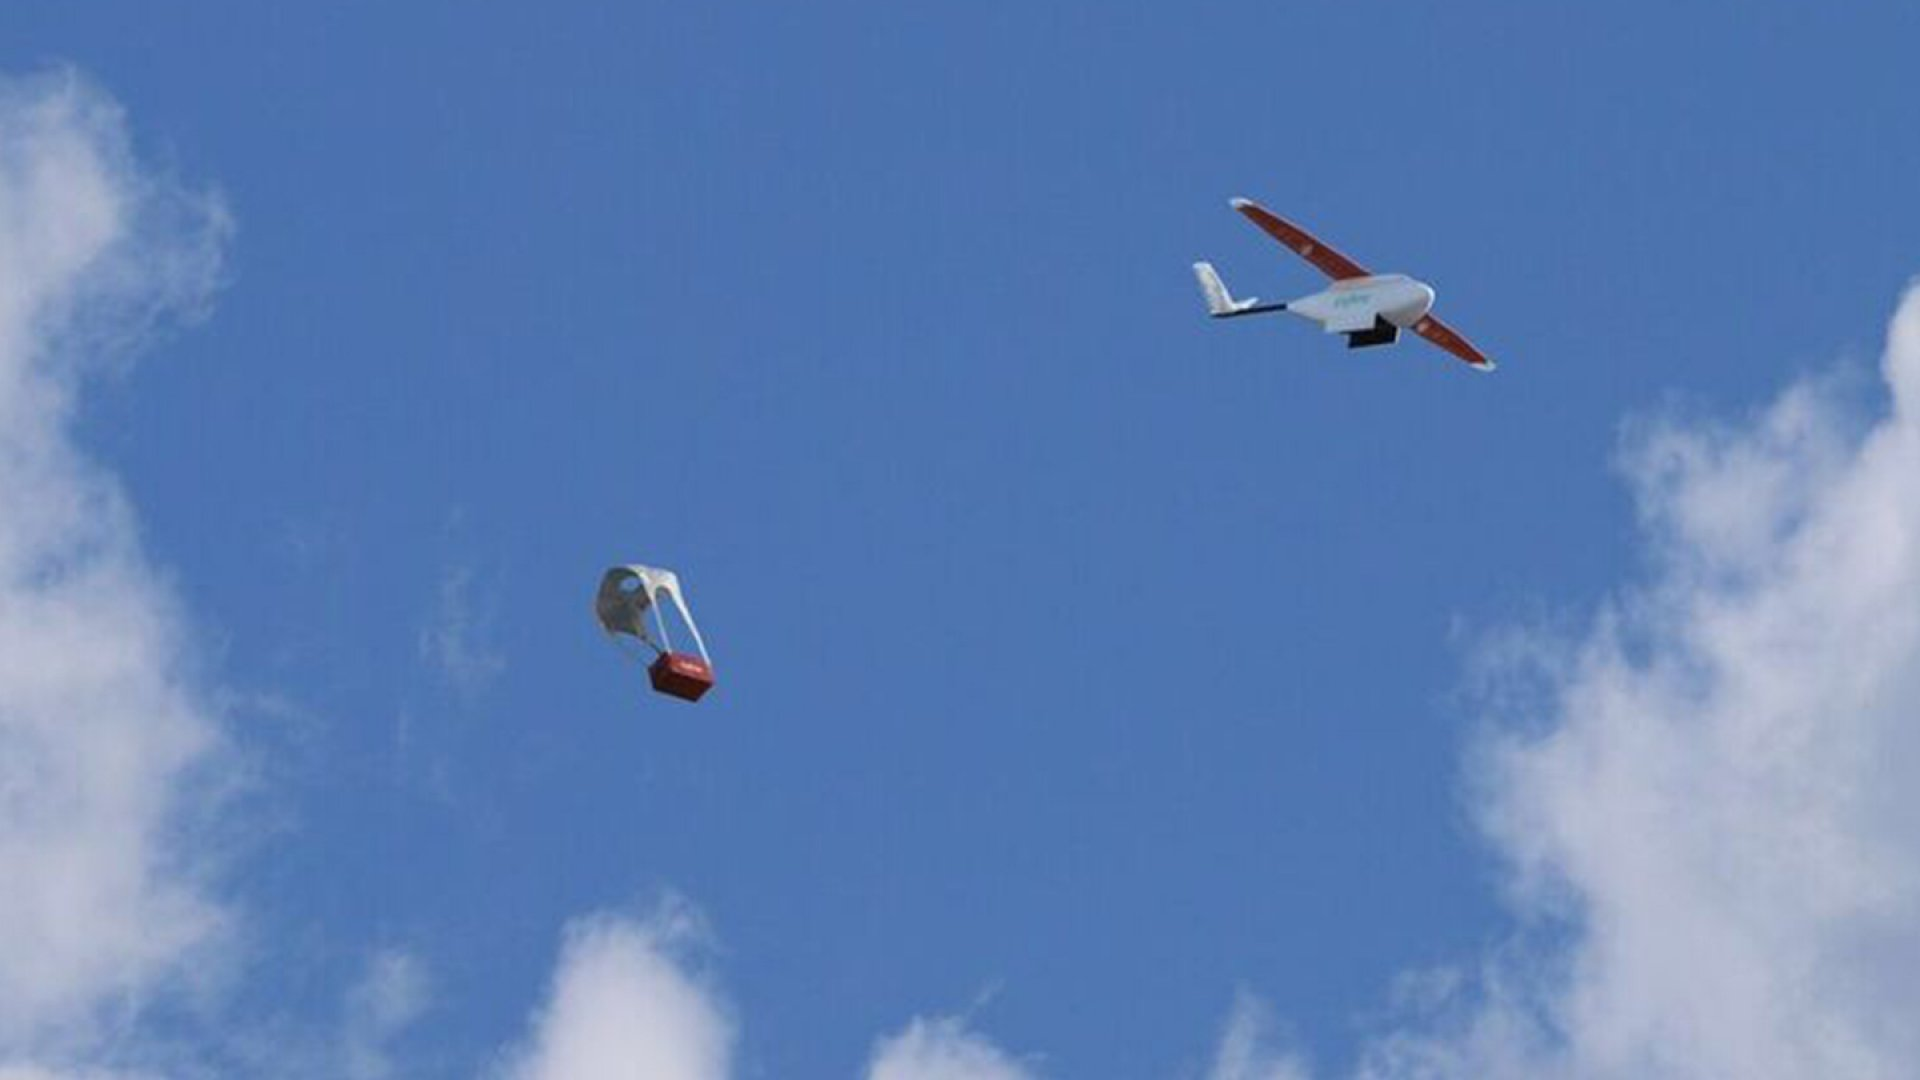 San Francisco-based drone company Zipline has an autonomous system to airdrop supplies to patients in need.